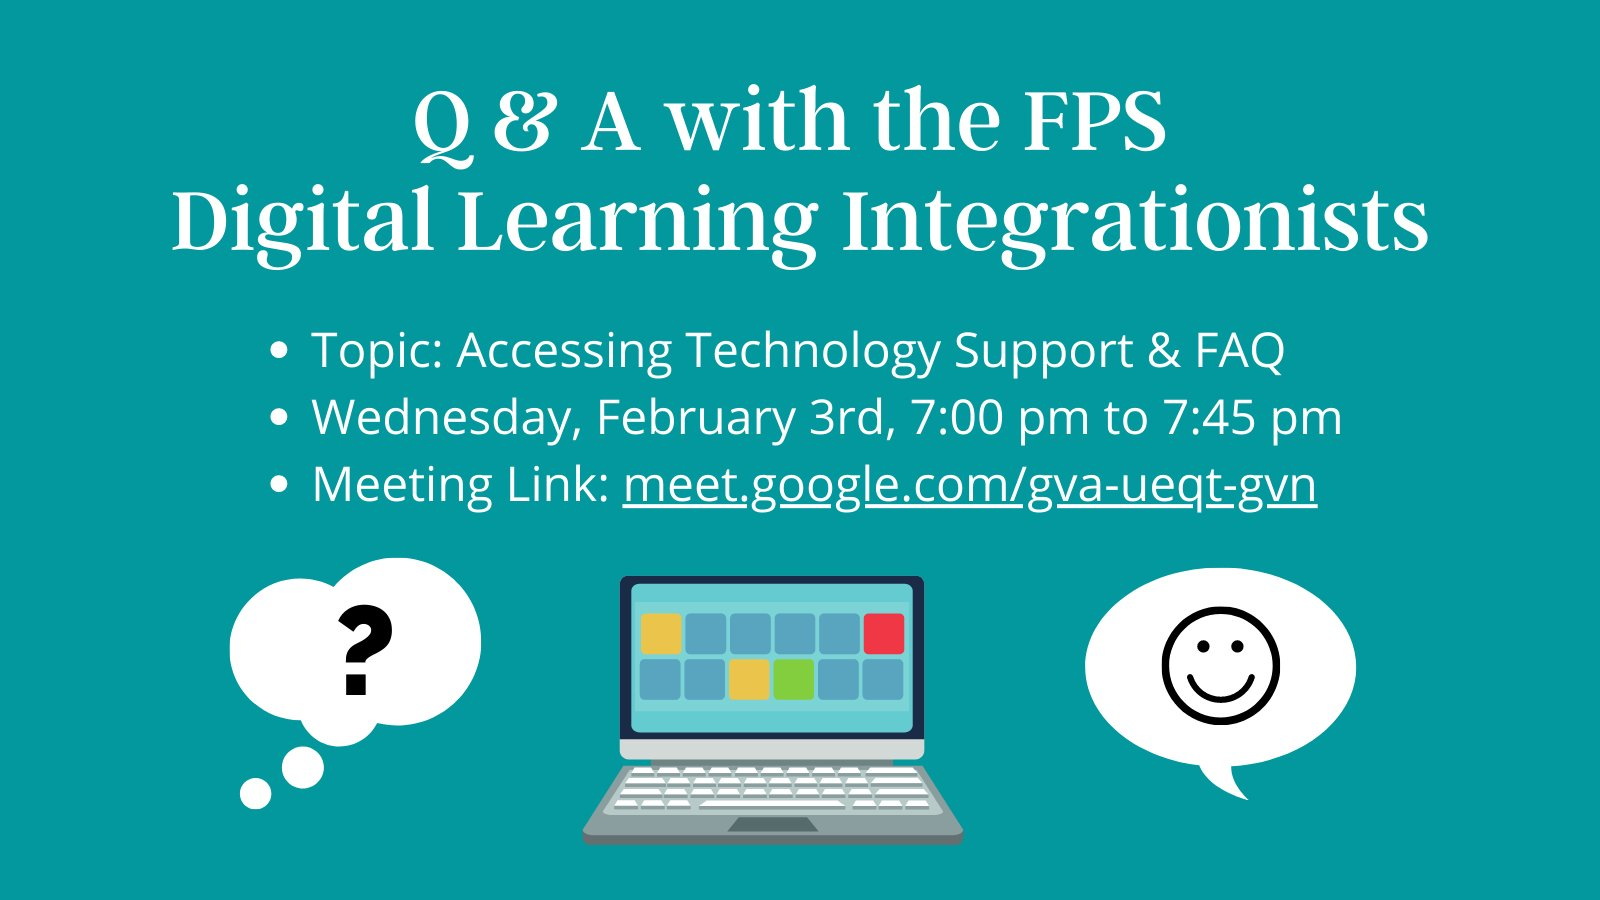 Q & A with the FPS Digital Learning Integrationists - Feb 3